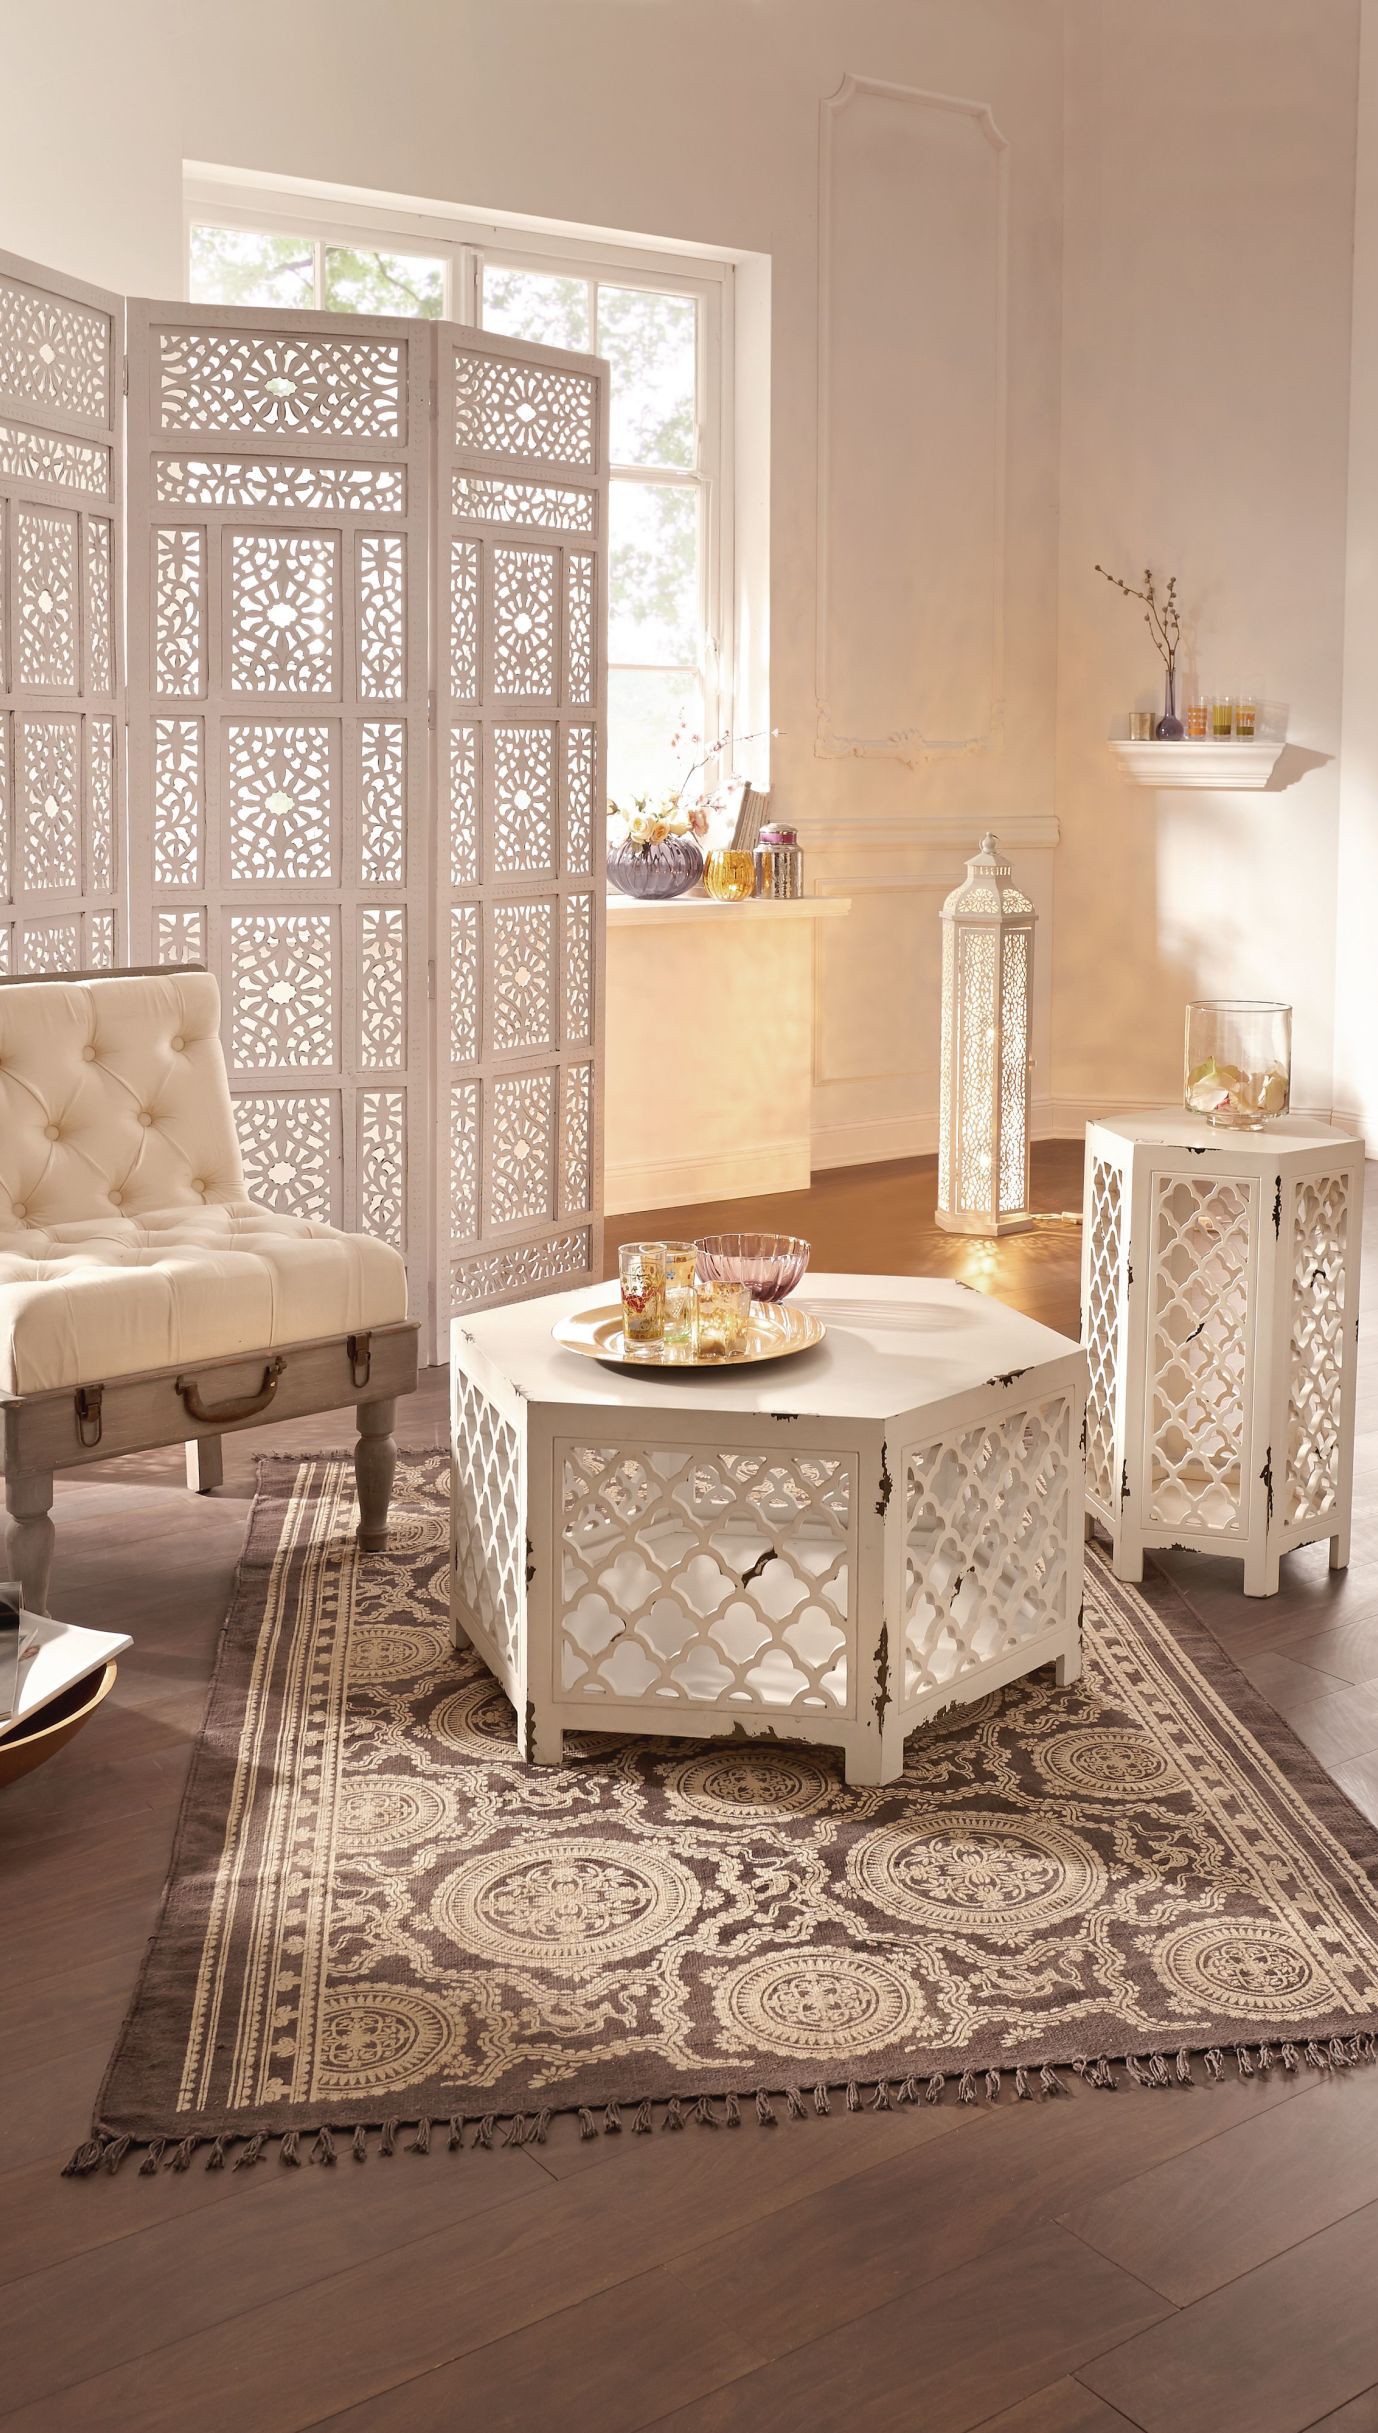 White Hexagonal Side Table With Moroccan Inspired Design